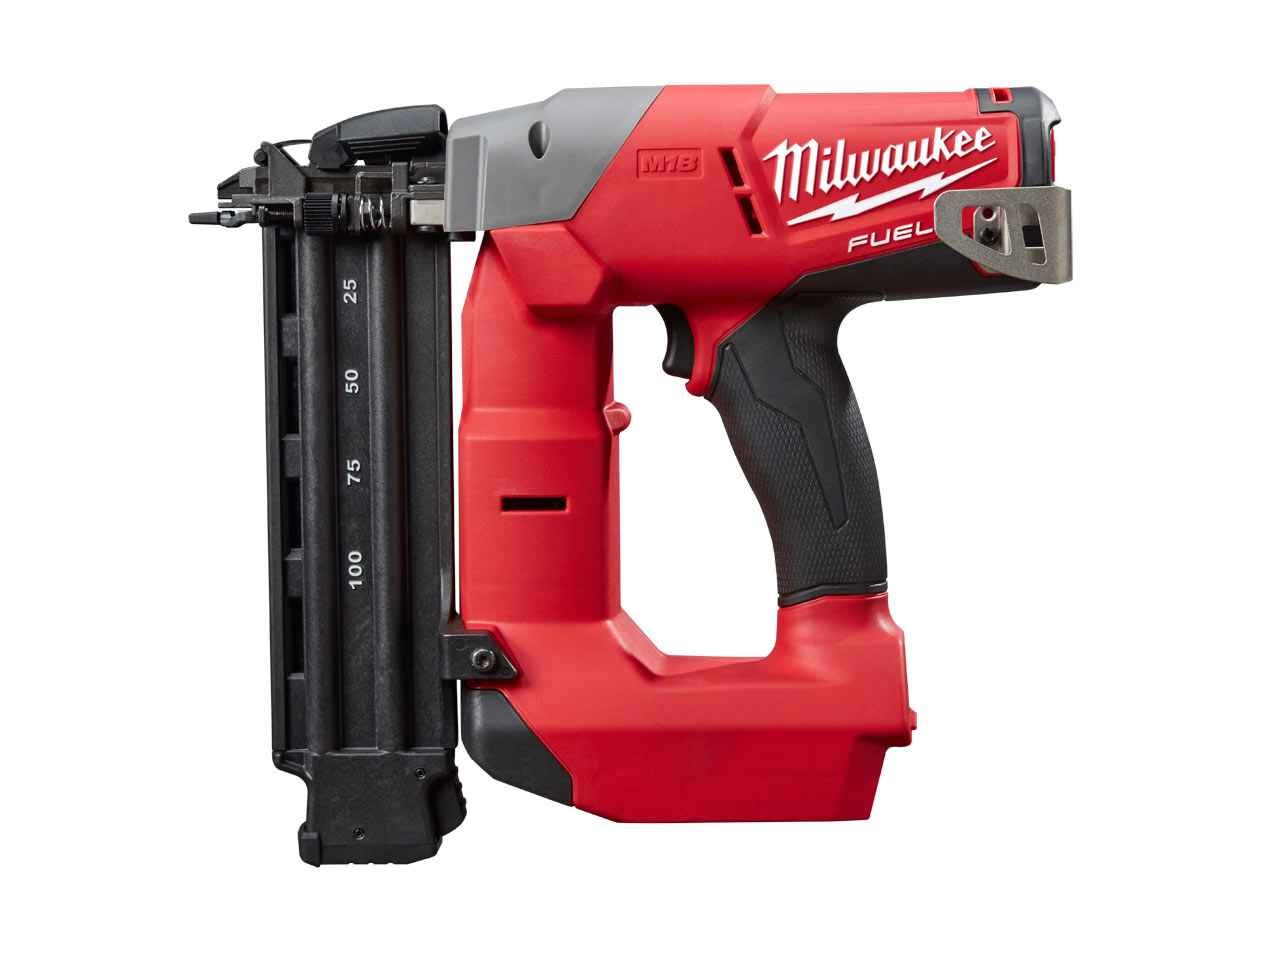 Milwaukee M18CN18GS-0X 18V Fuel Li-ion 18G Brad Nailer Bare Unit